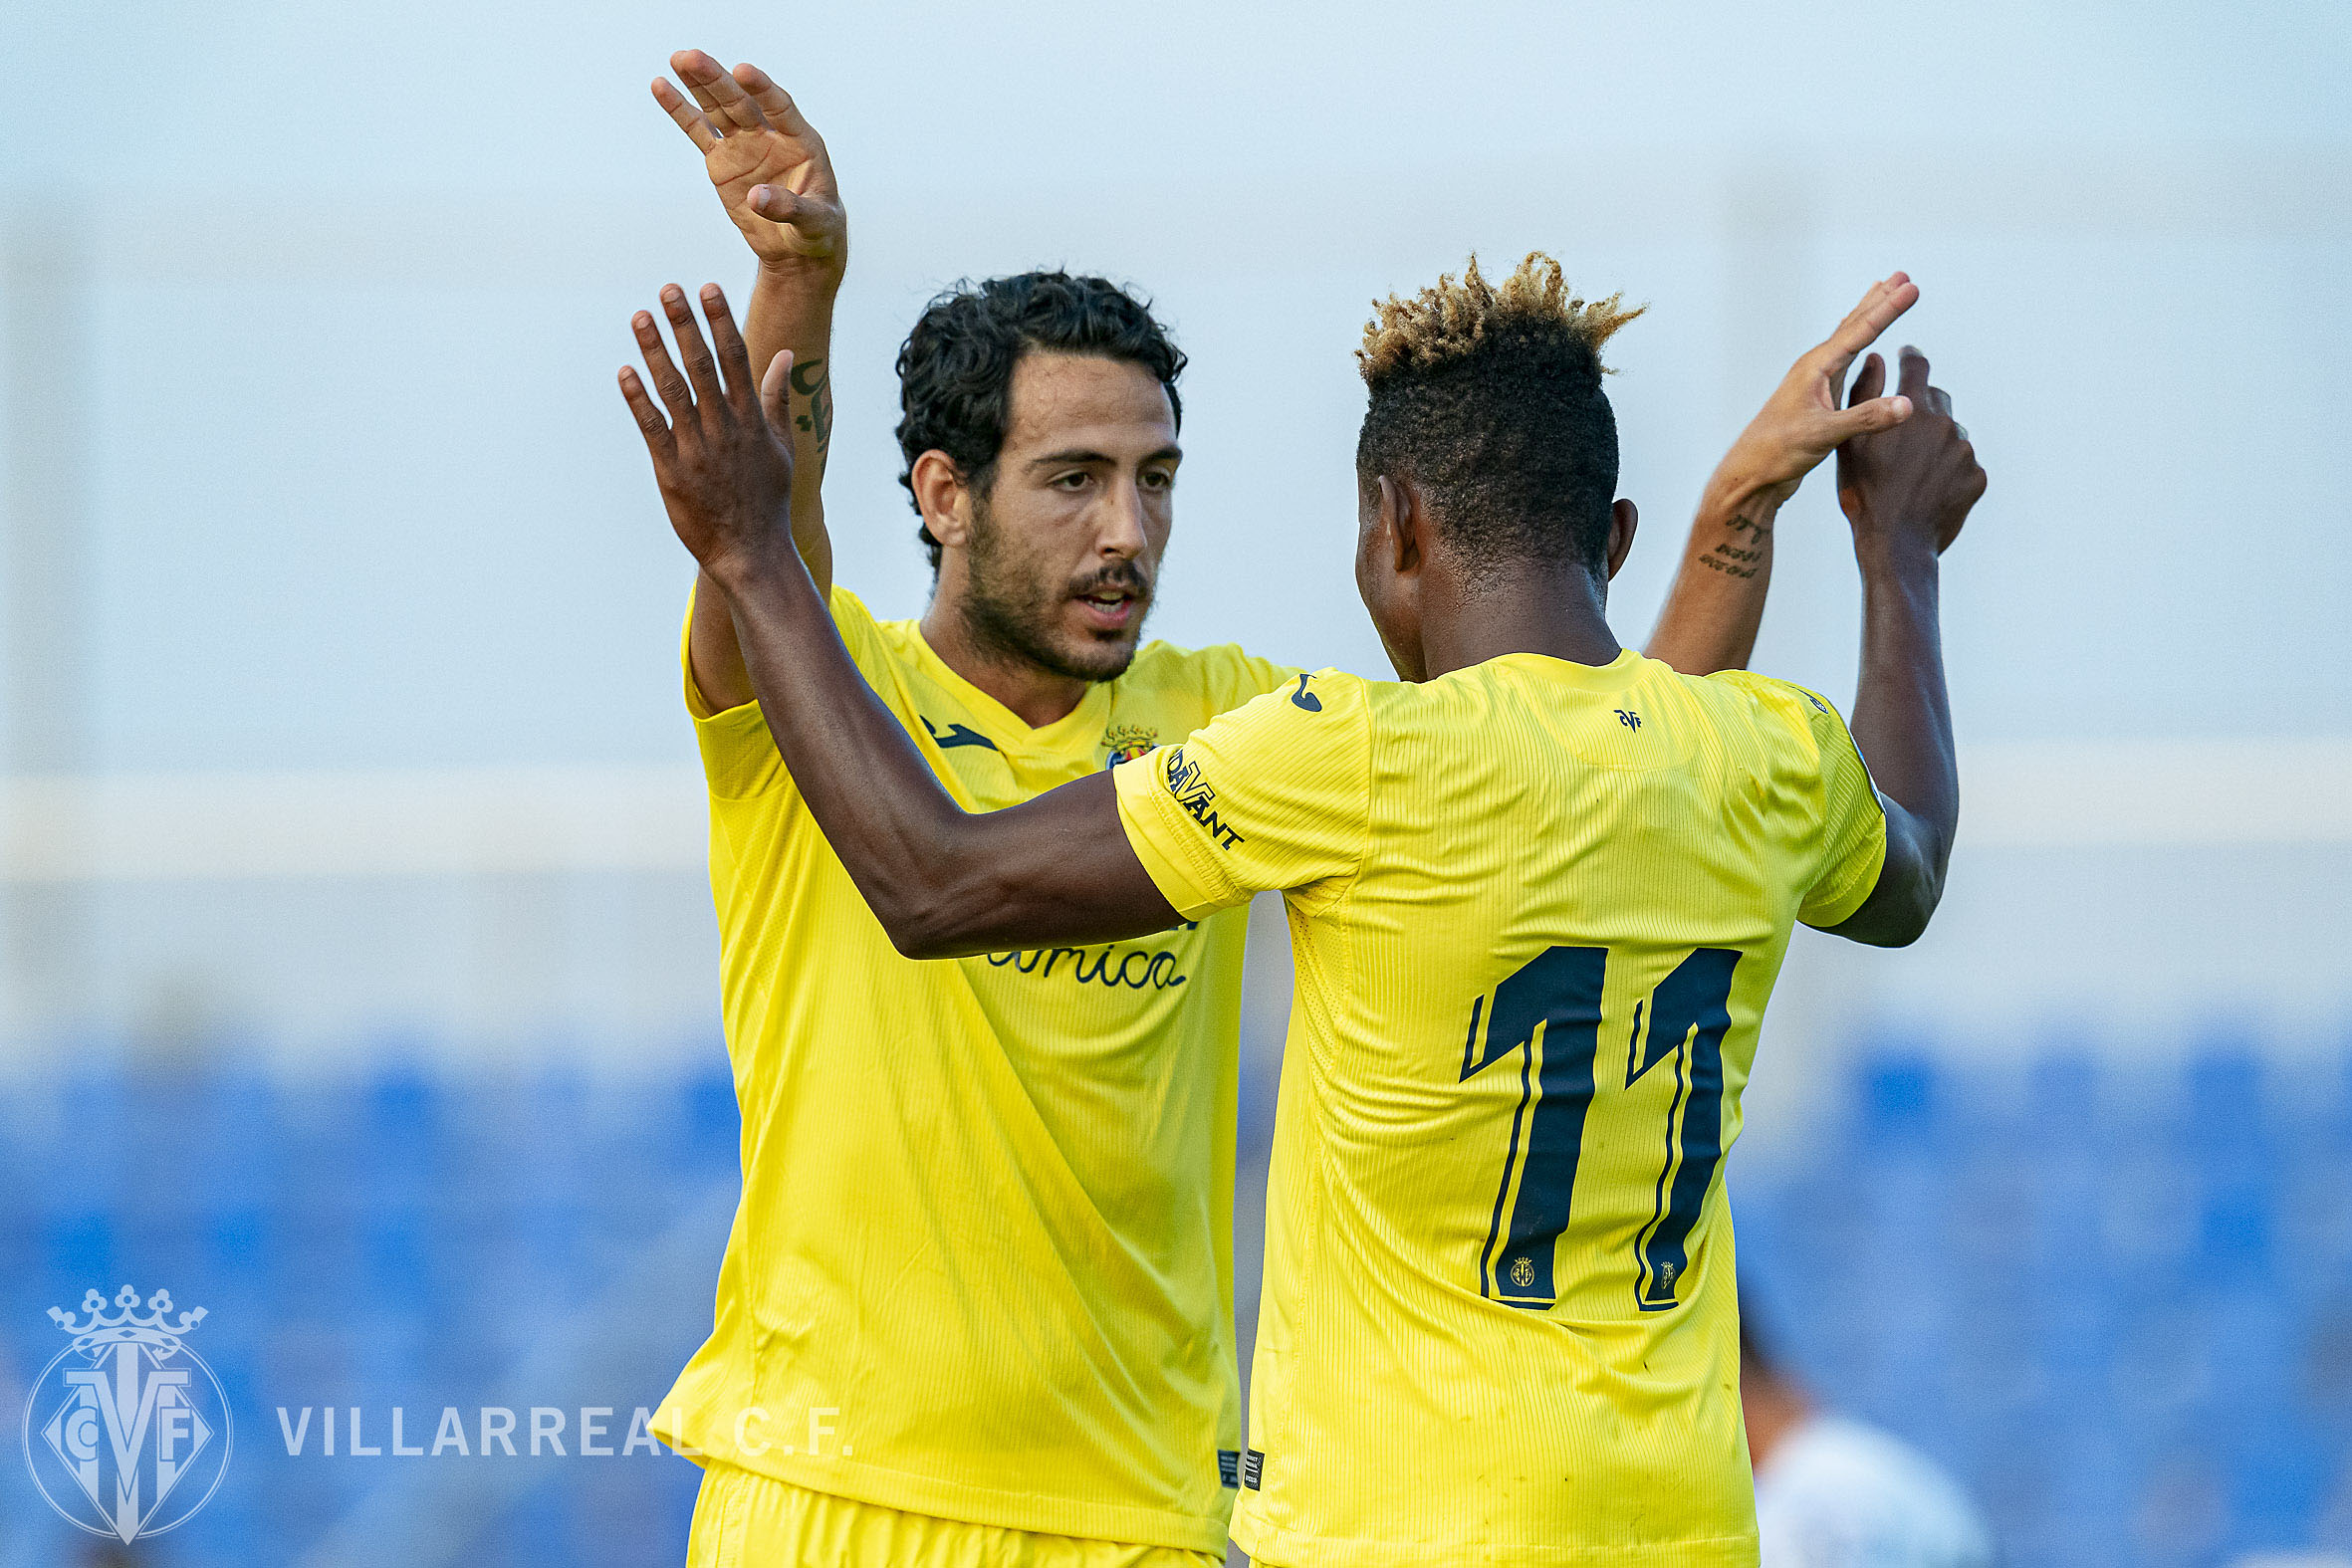 Chukwueze Bags Another Assist As Villareal Lose To Levante In Final Pre-season Game